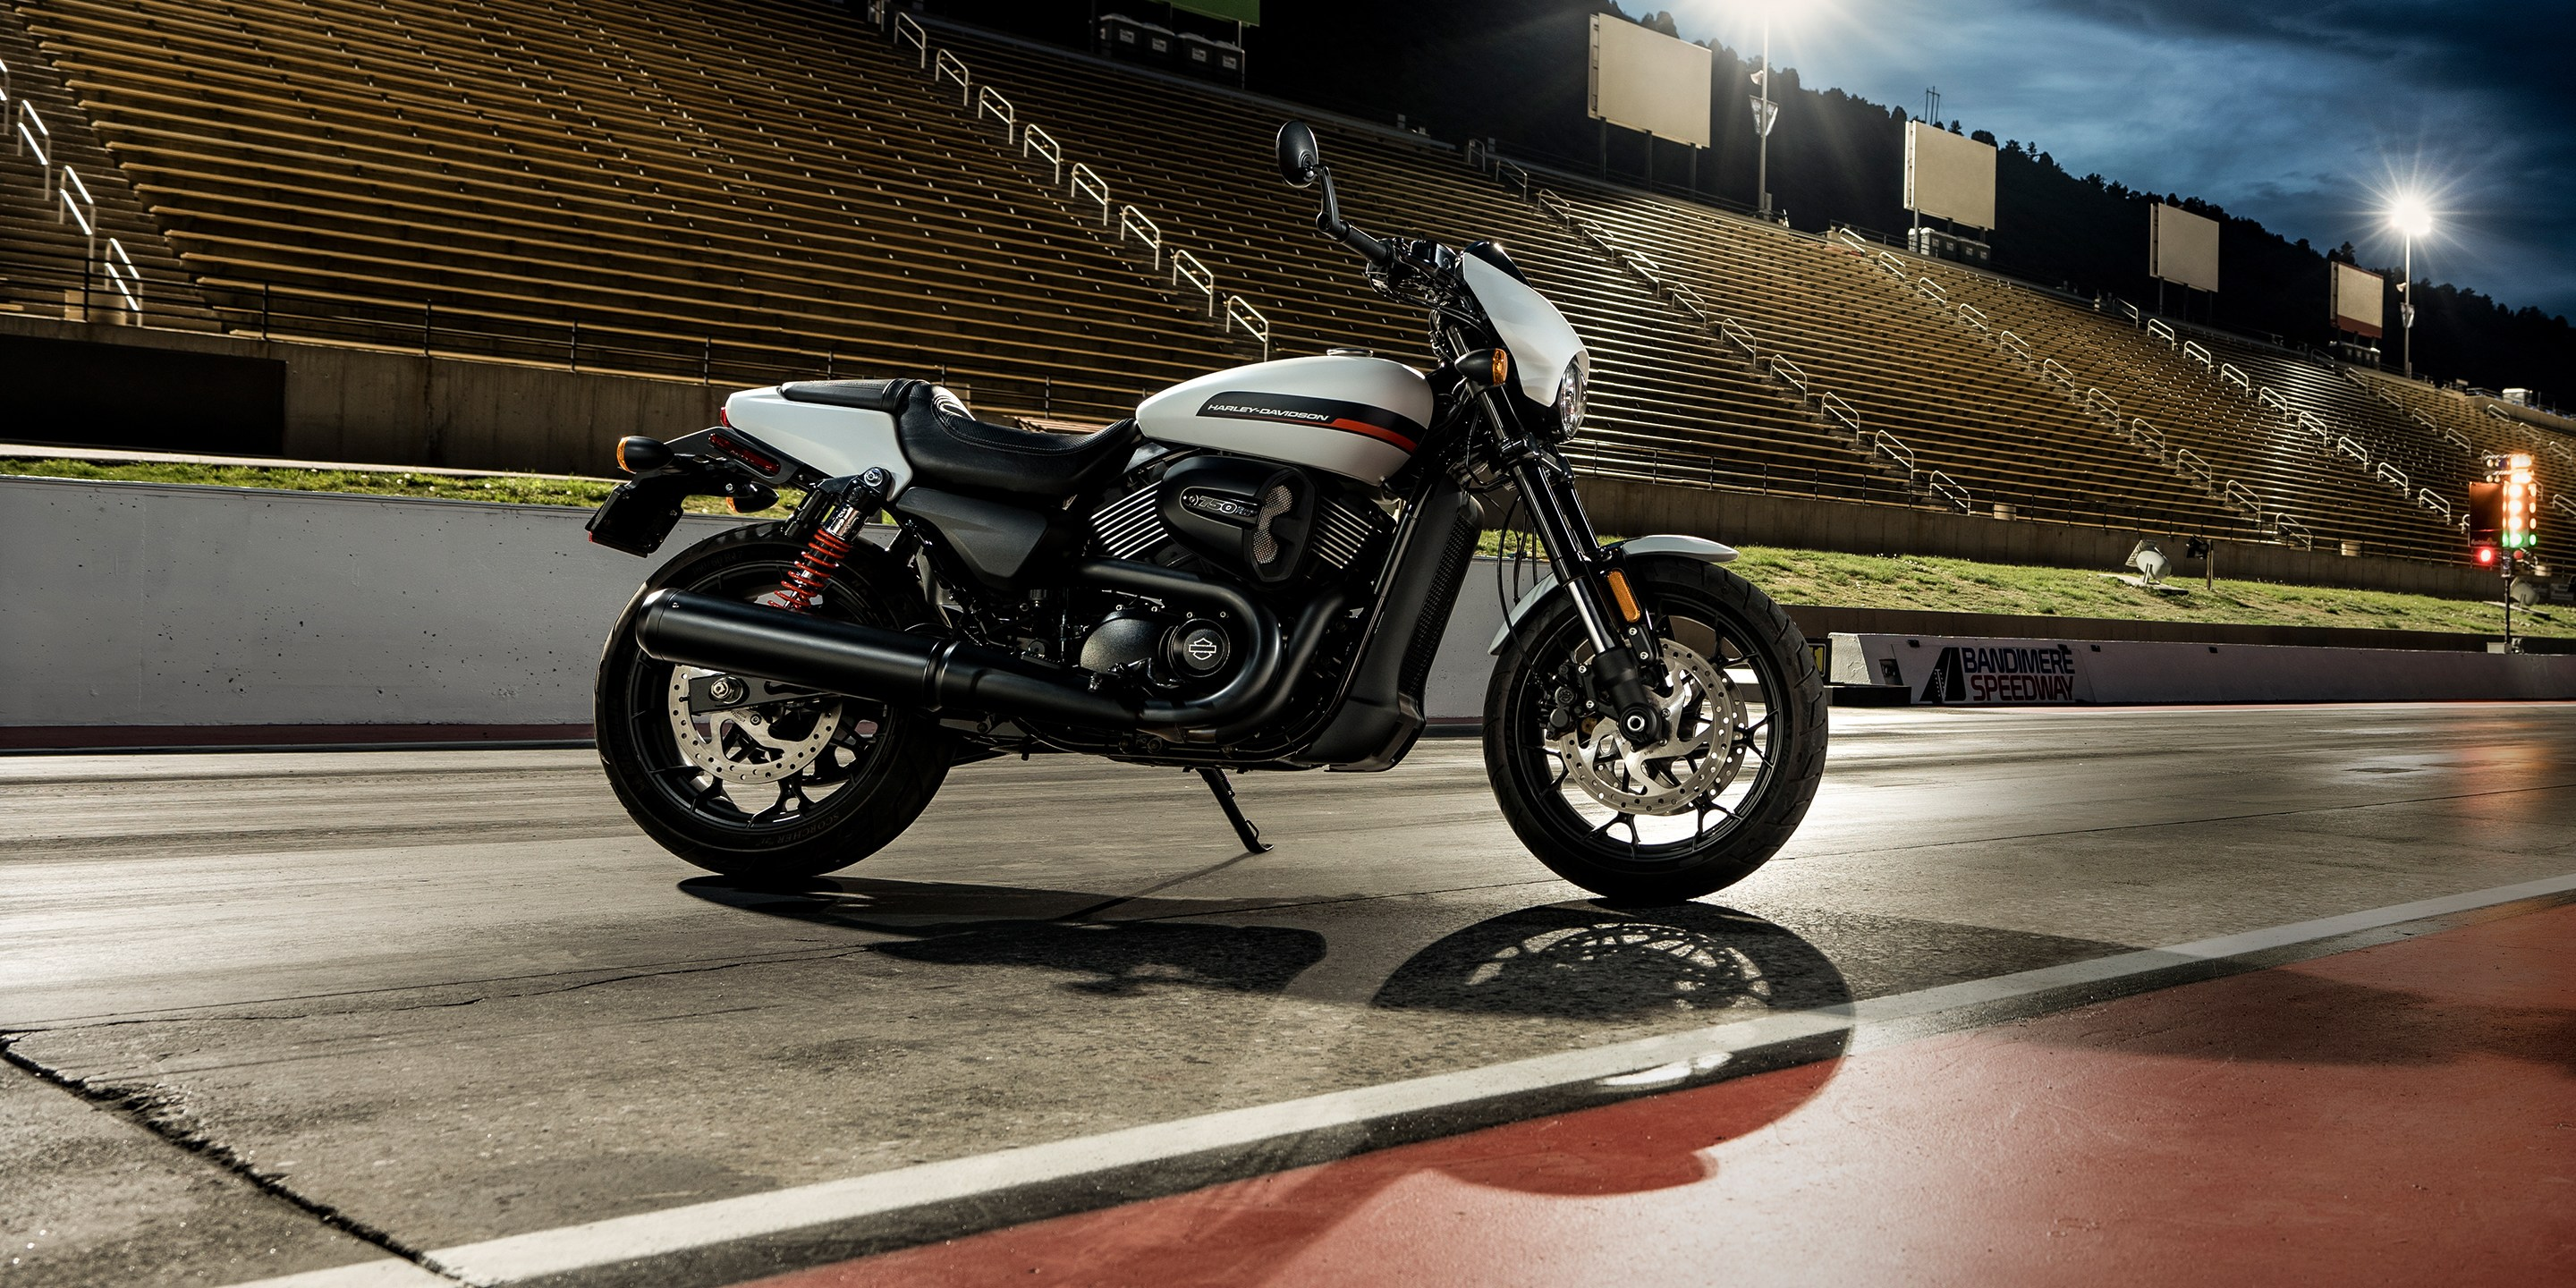 2019 Harley Davidson Street Rod Hd Bikes 4k Wallpapers Images Backgrounds Photos And Pictures